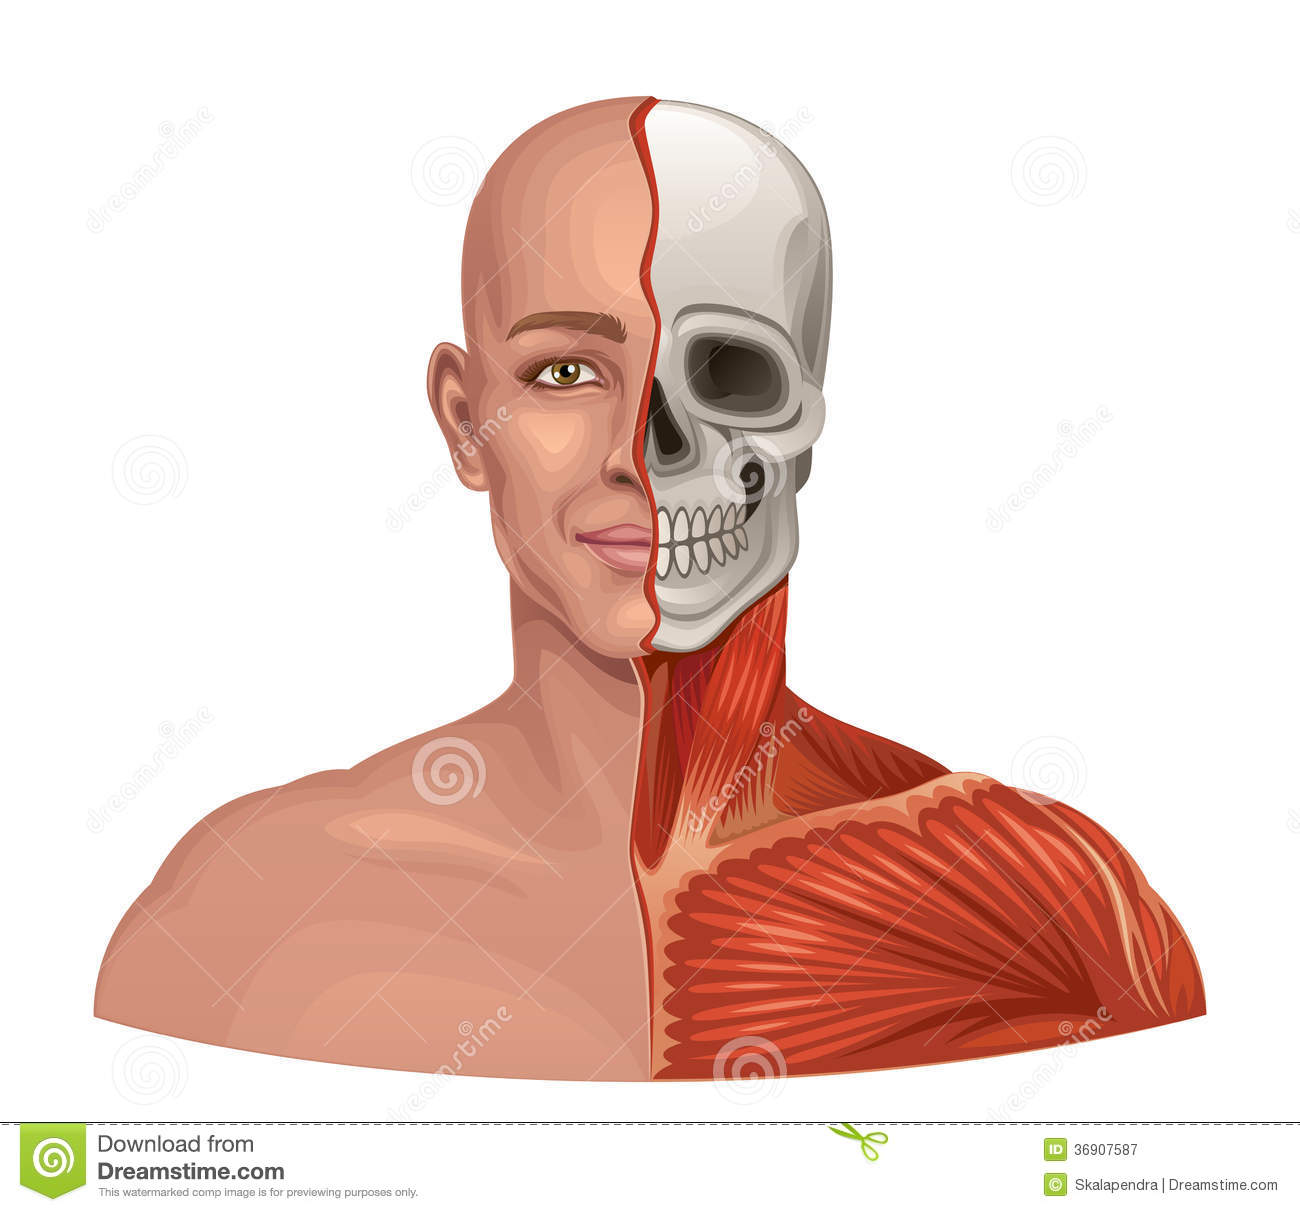 Human Anatomy Facial Muscles And Skull Stock Vector